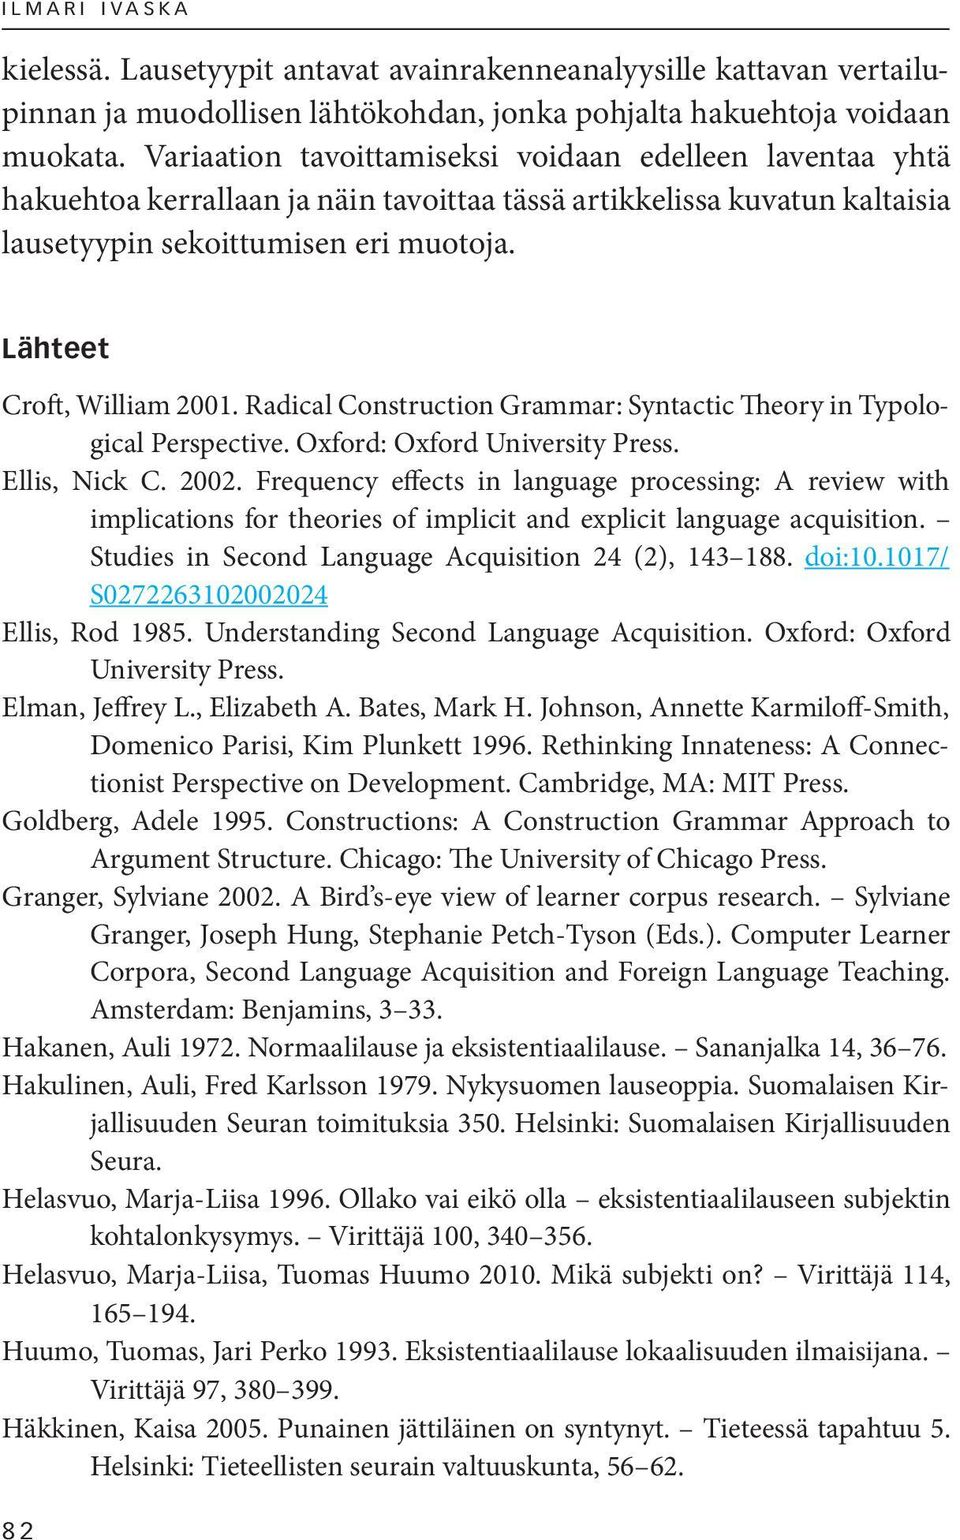 Lähteet Croft, William 2001. Radical Construction Grammar: Syntactic Theory in Typological Perspective. Oxford: Oxford University Press. Ellis, Nick C. 2002.